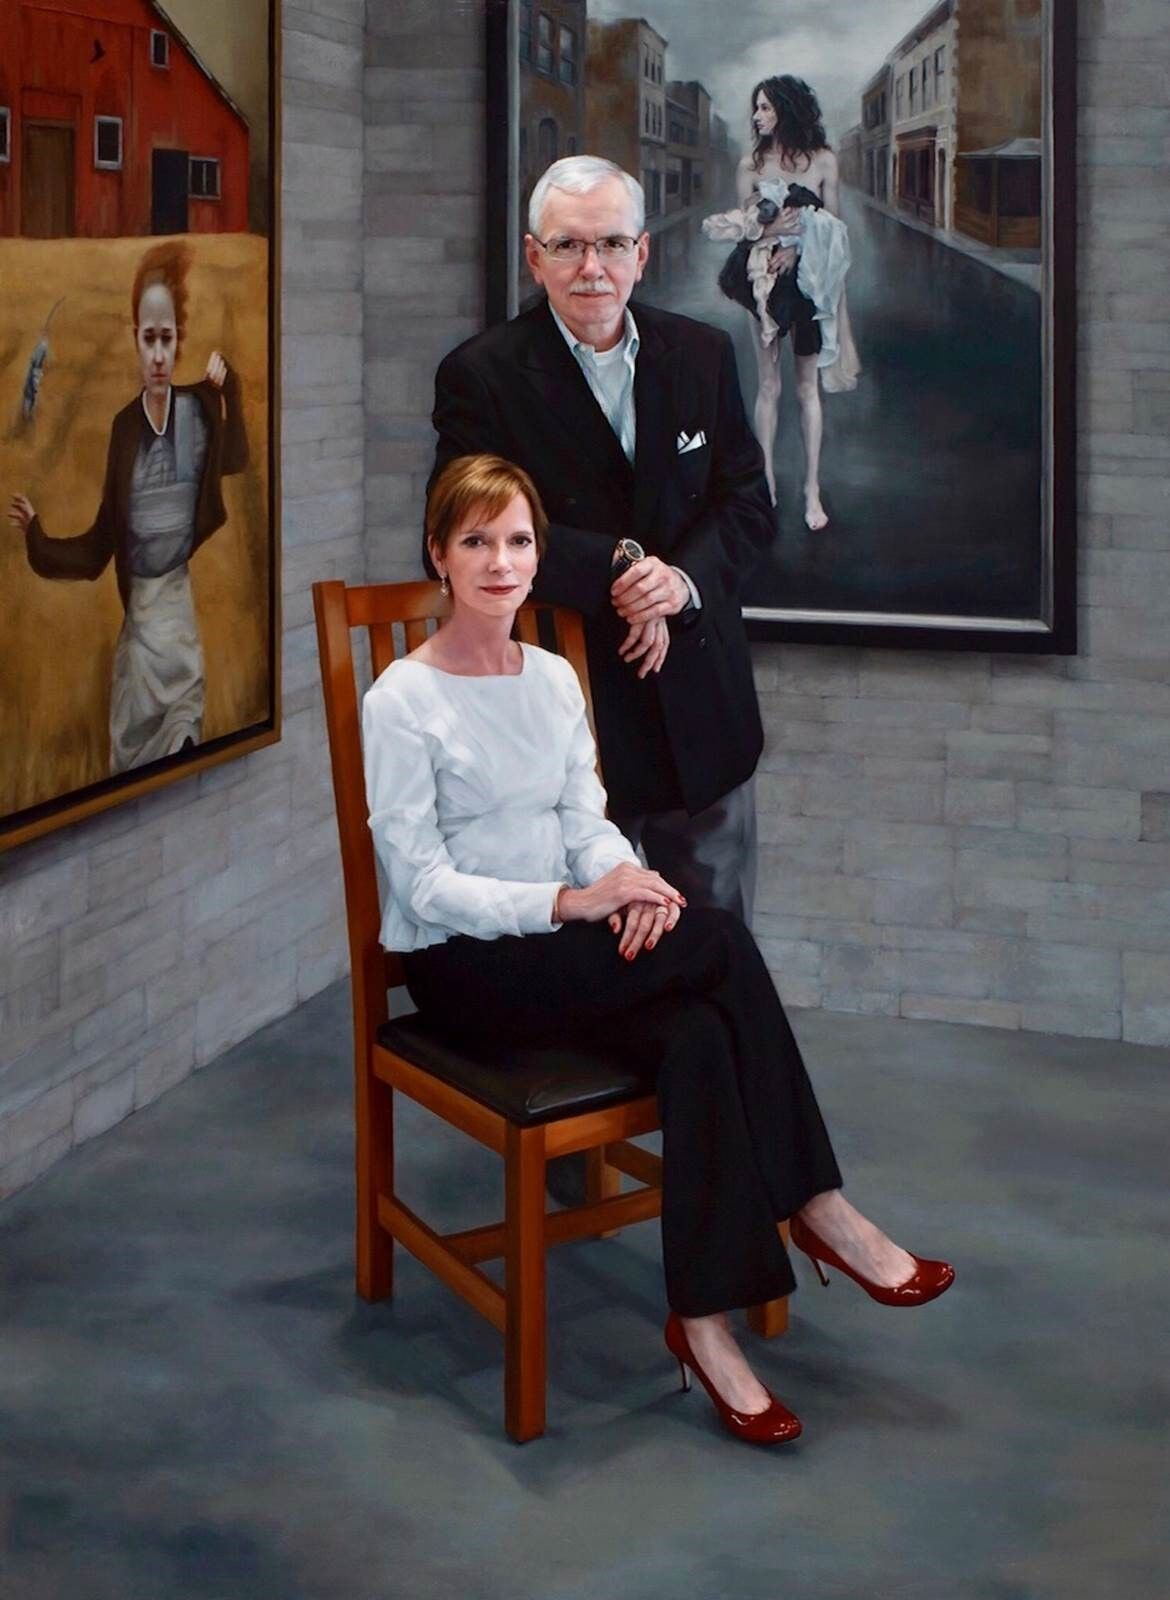 Katie O'Hagan, Portrait of the Collectors, 2016. Courtesy of The Bennett Prize.